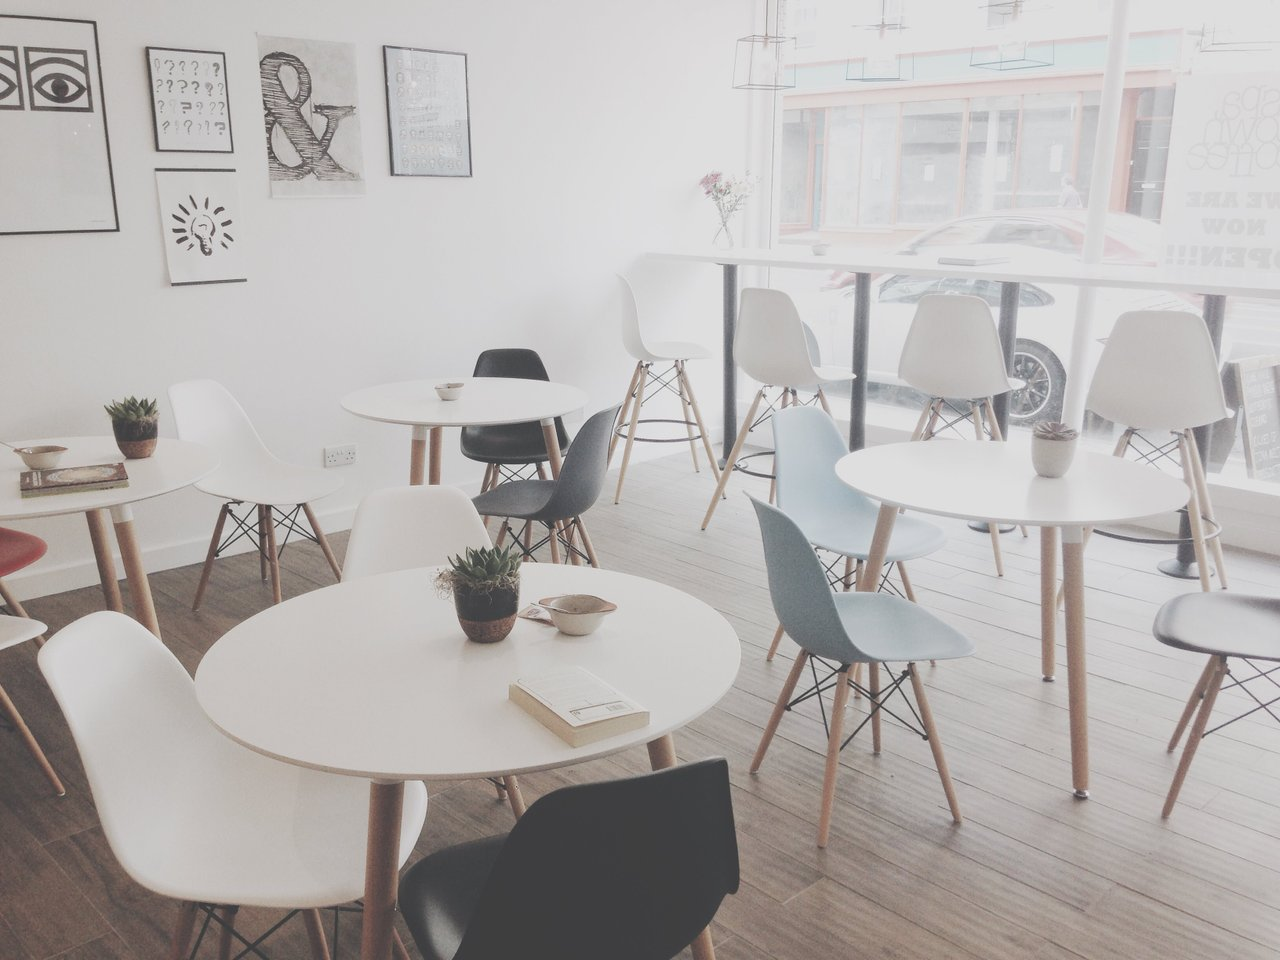 coffee shop working space